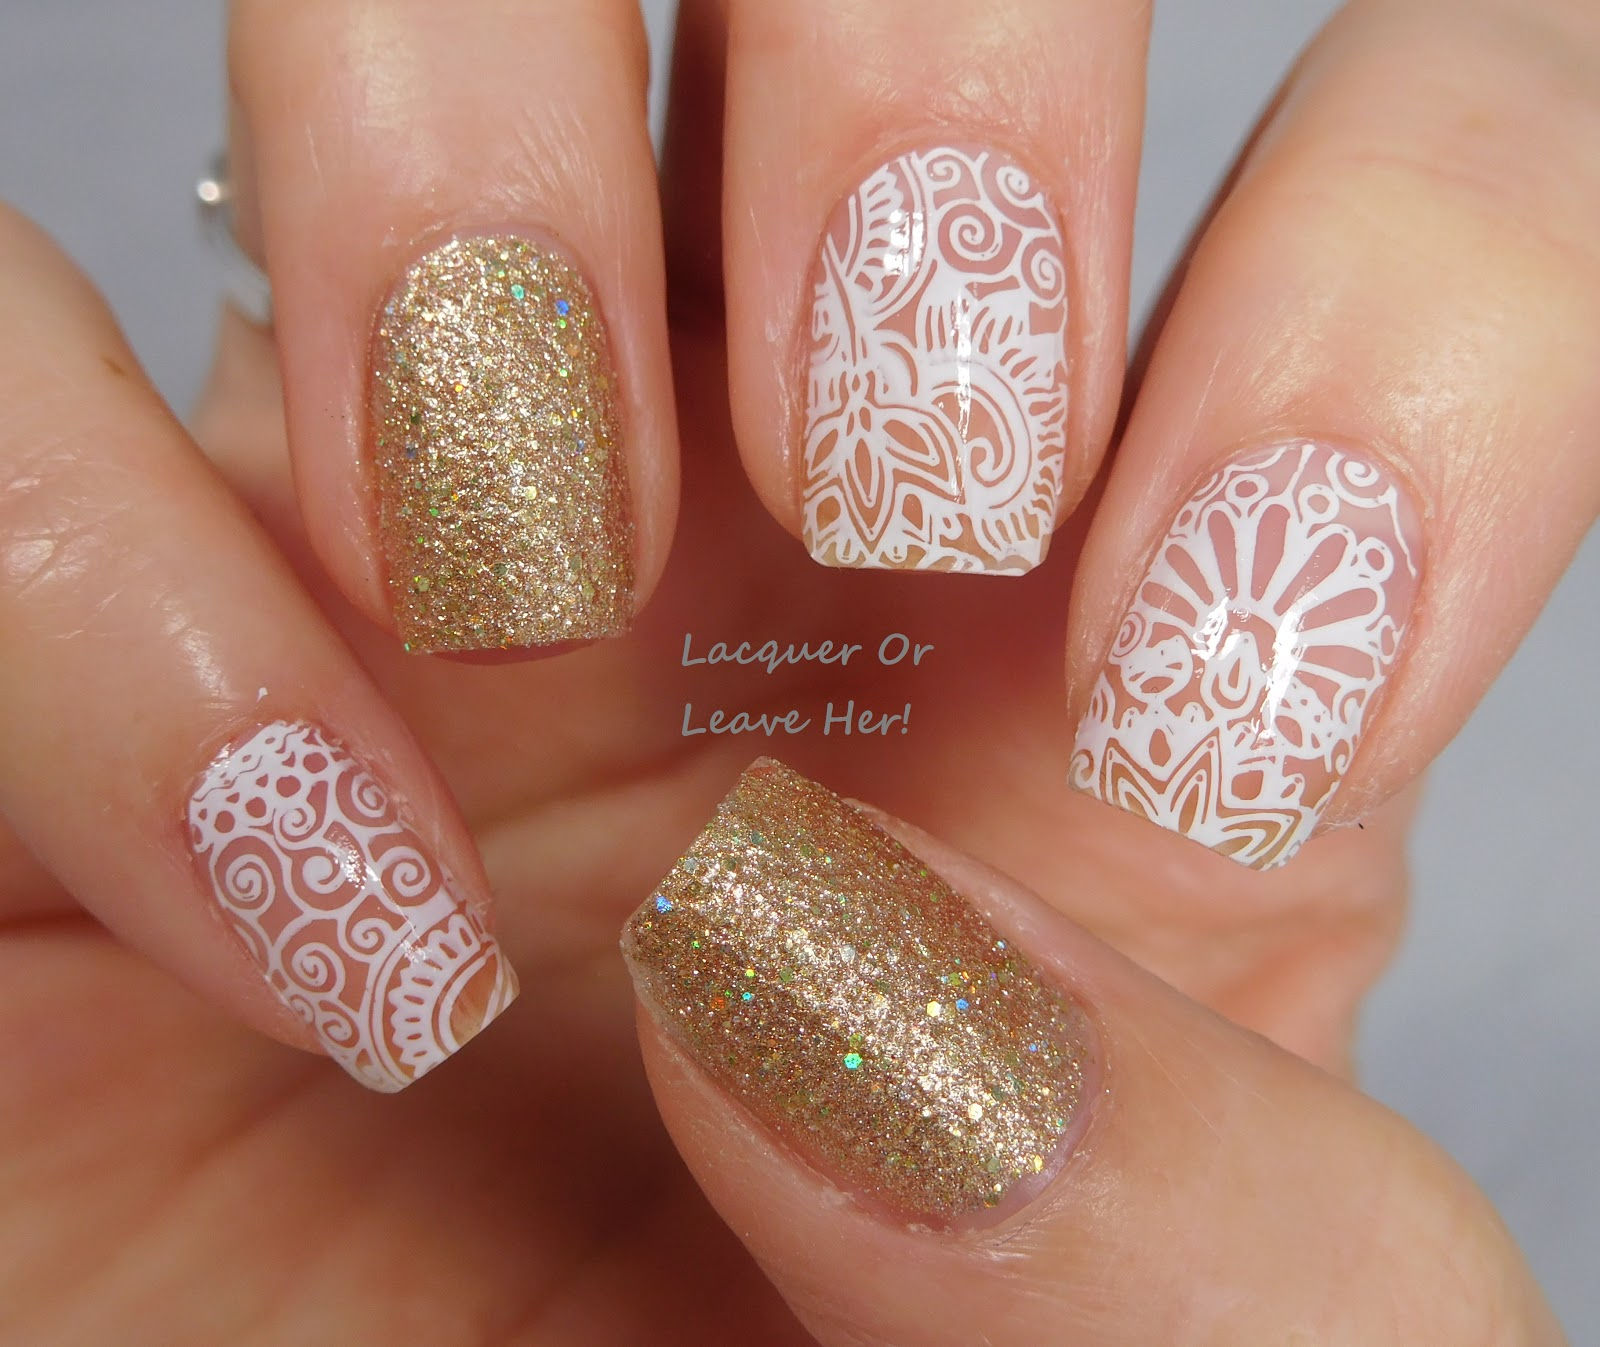 Lacquer Or Leave Her Review Winstonia Love Of Henna Plate Plus